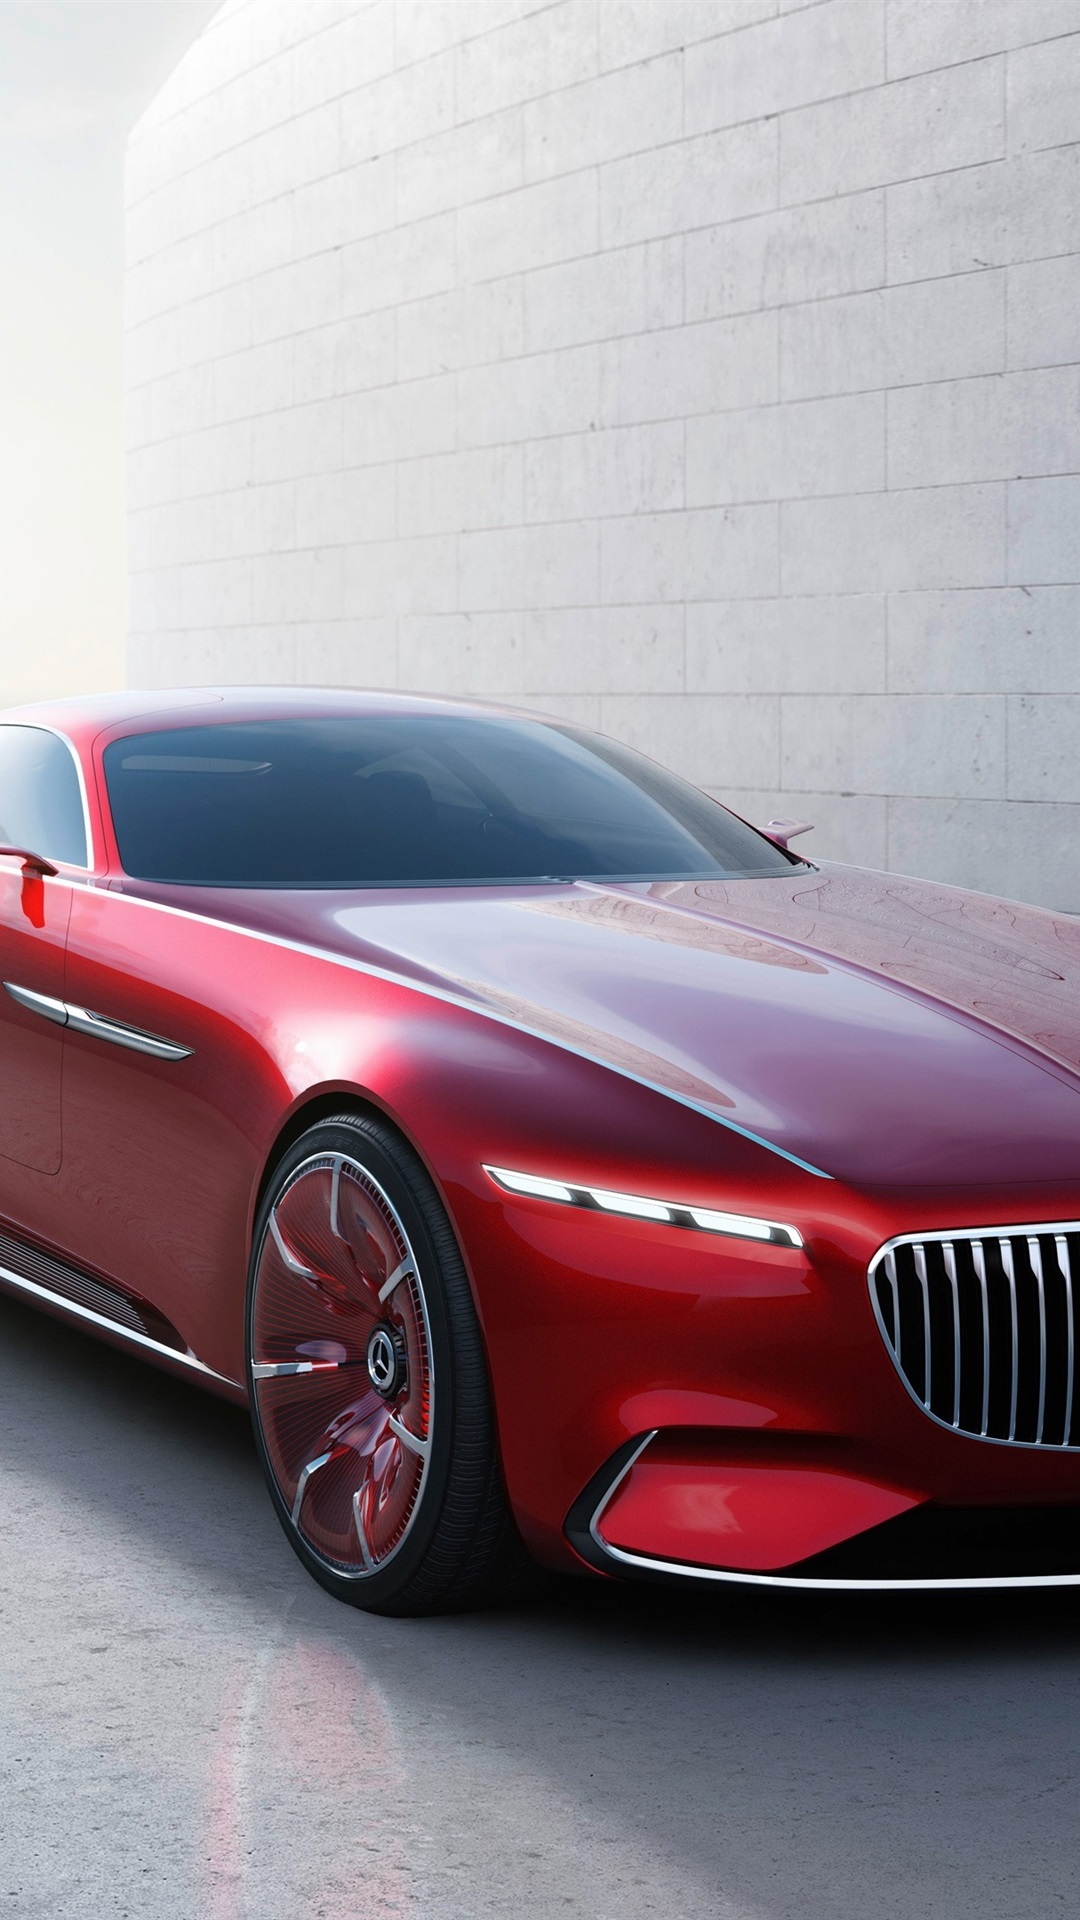 Wallpaper Mercedes Benz Maybach 6 Red Color Car 3840x2160 Uhd 4k